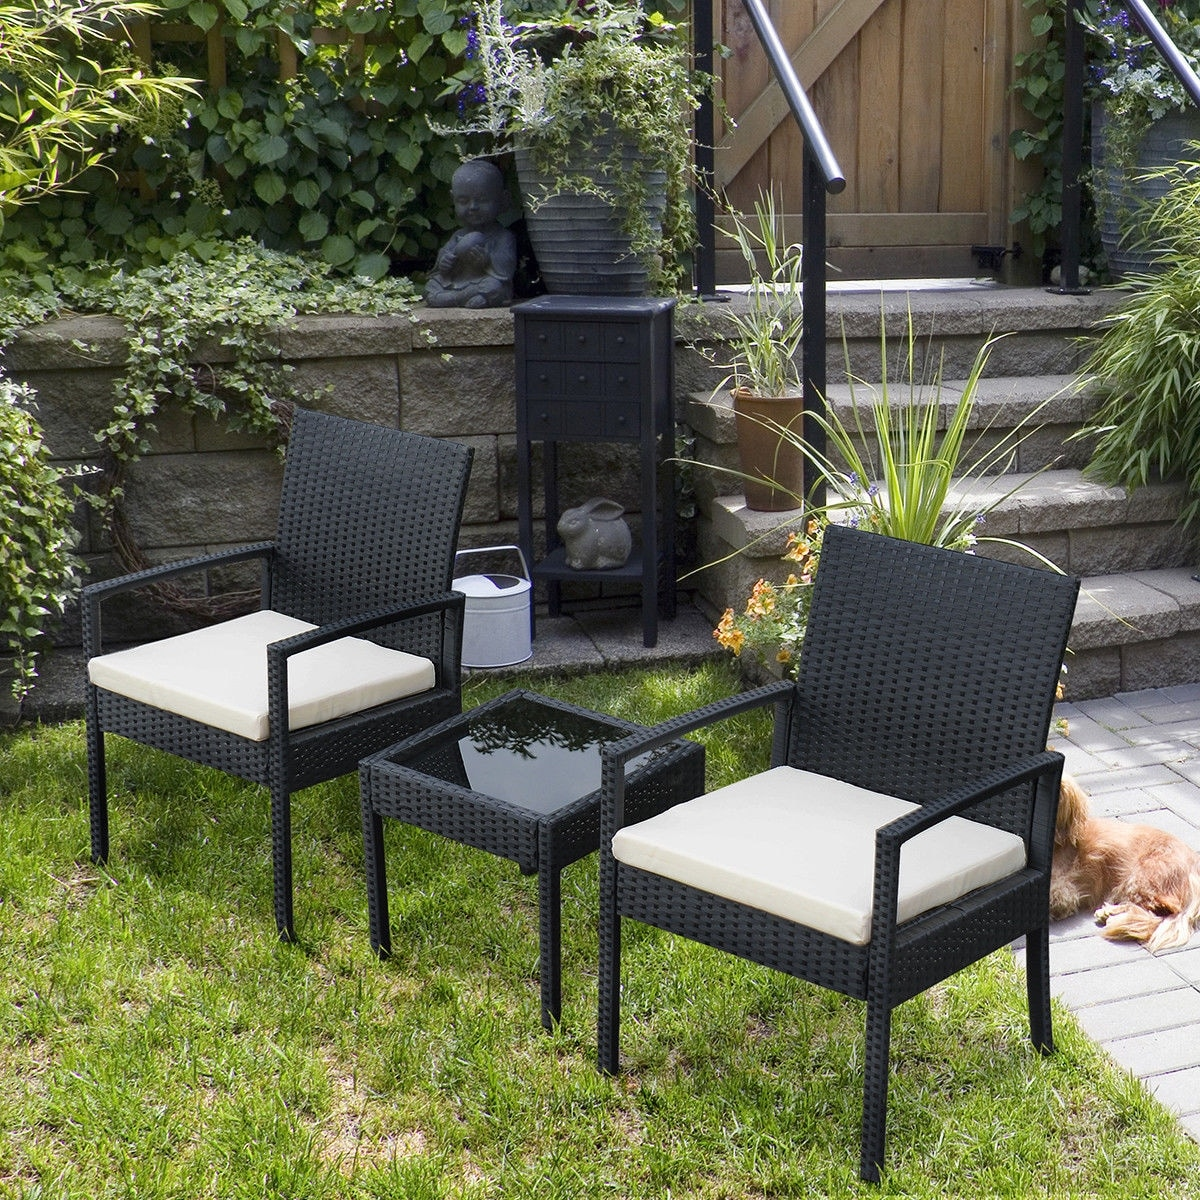 Shop Costway 3 PS Outdoor Rattan Patio Furniture Set Backyard Garden  Furniture Seat Cushioned - Black - On Sale - Free Shipping Today -  Overstock.com - ... - Shop Costway 3 PS Outdoor Rattan Patio Furniture Set Backyard Garden